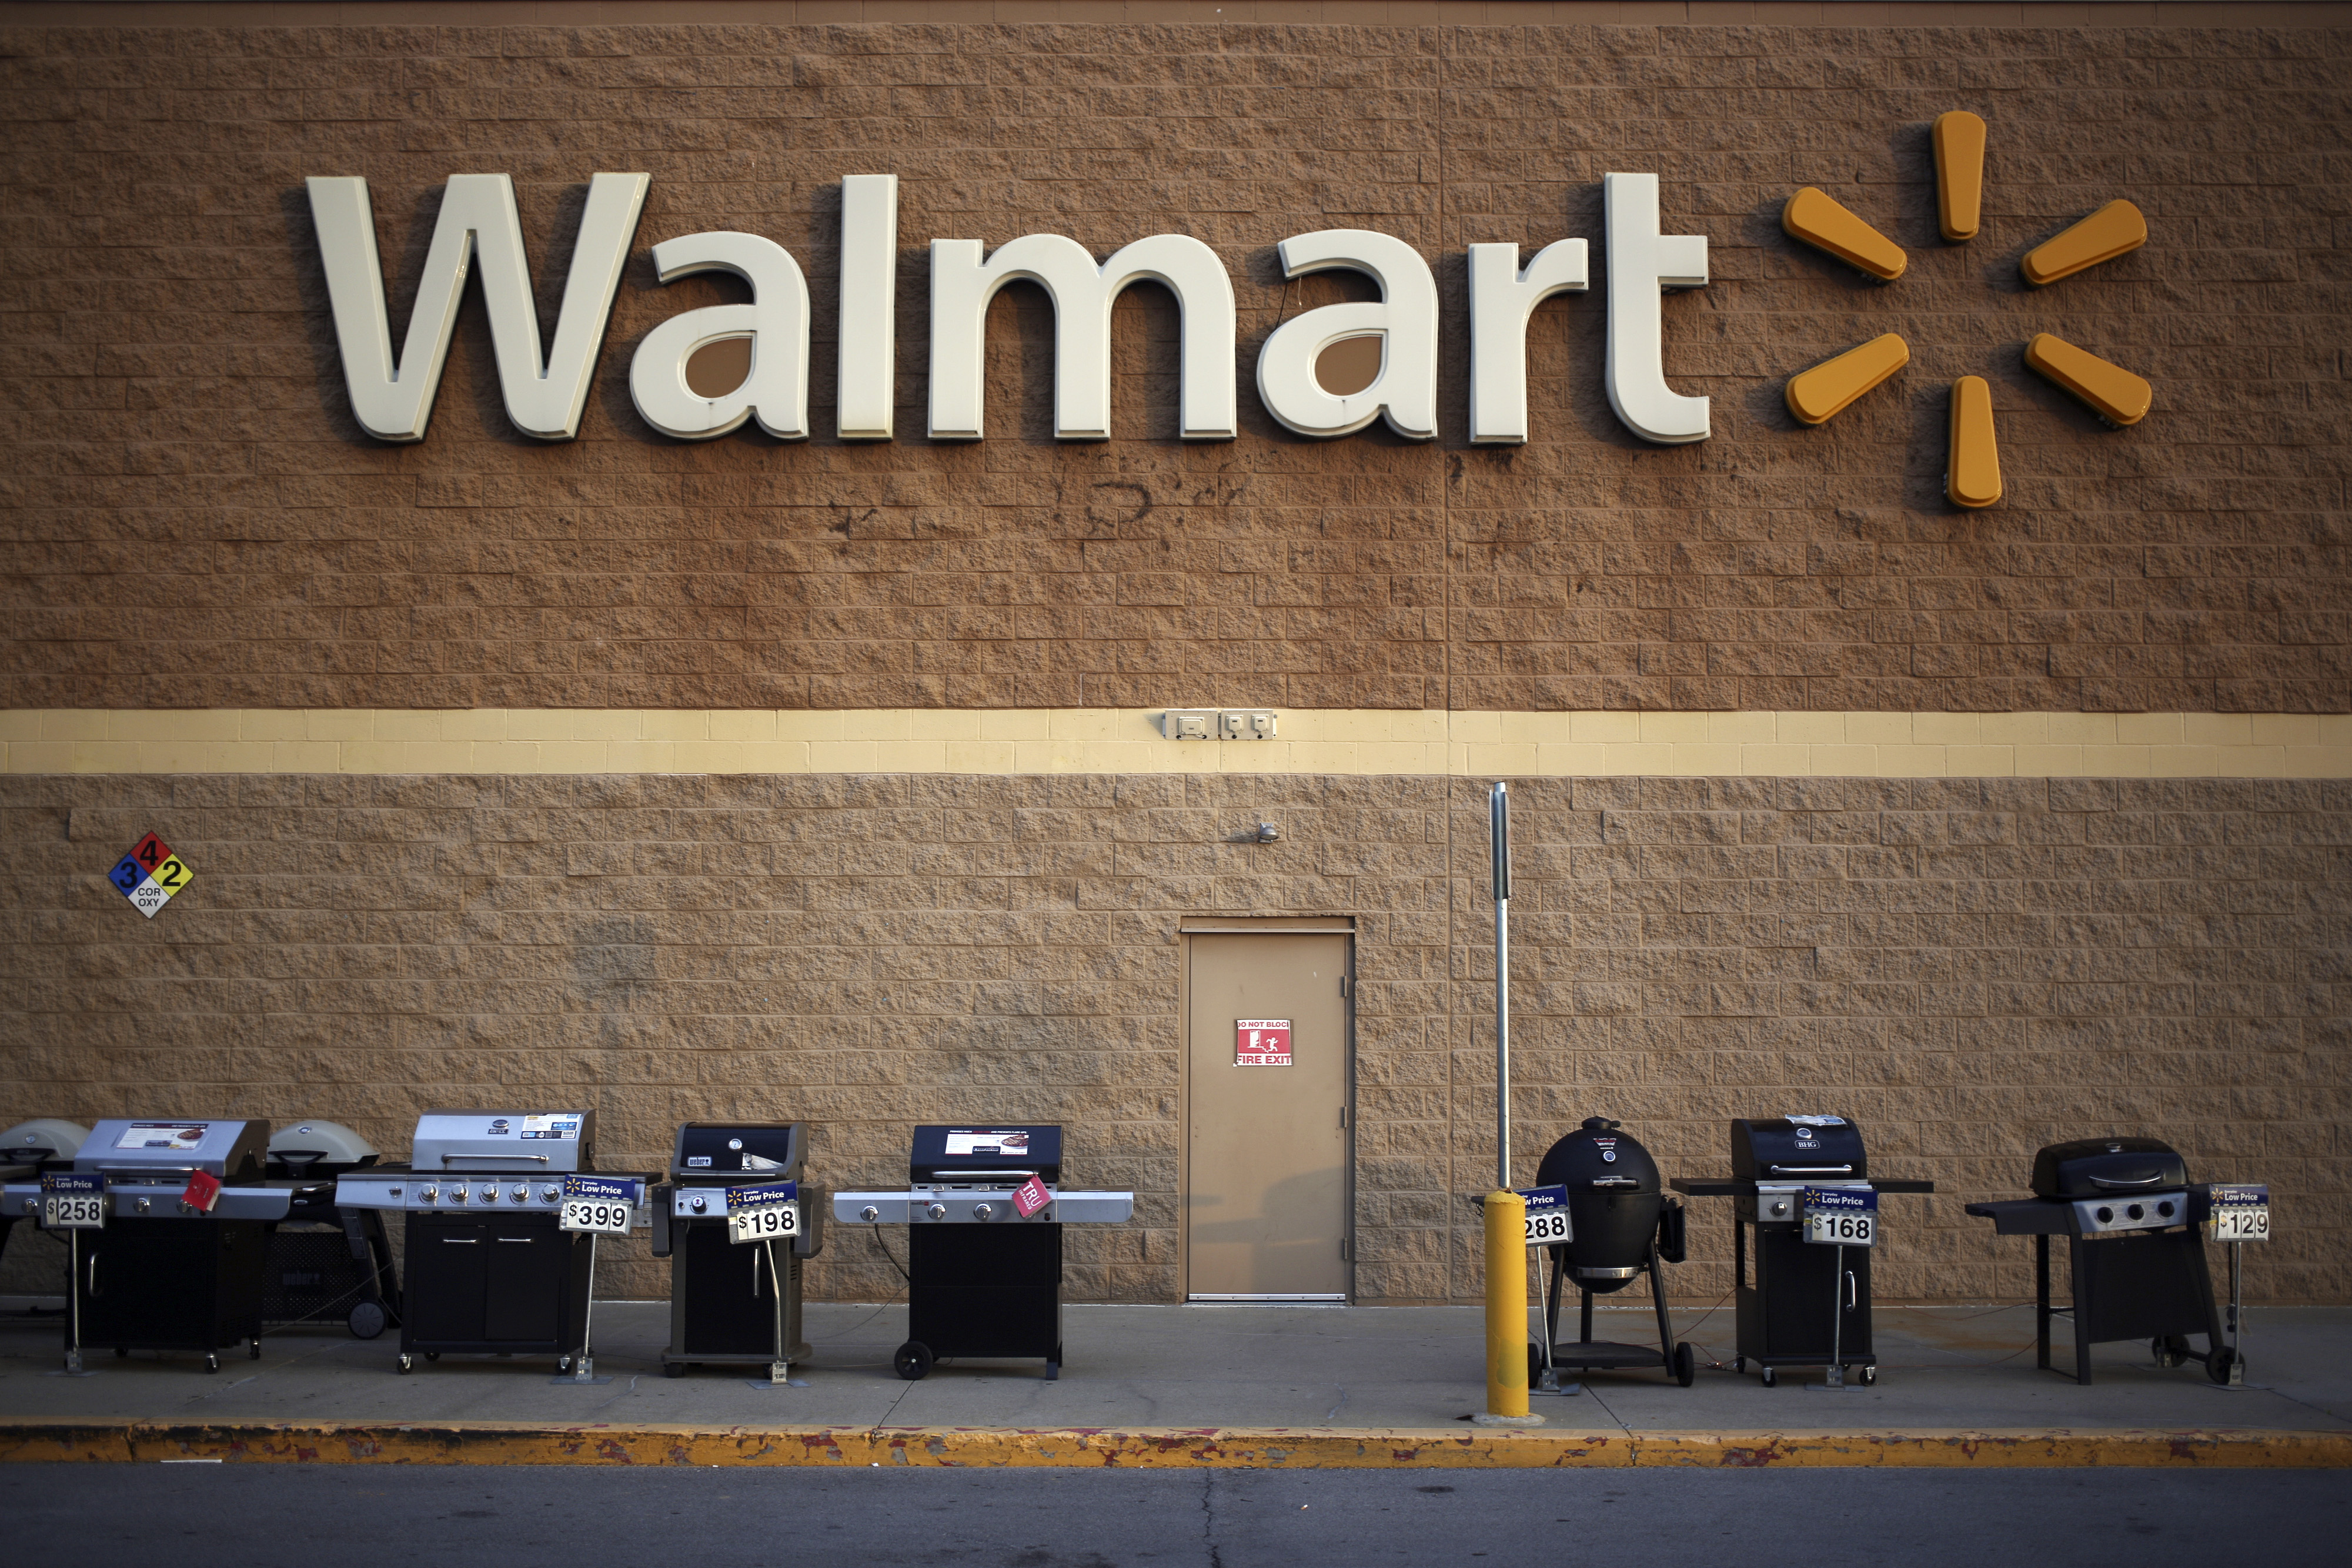 Gas grills are displayed for sale outside a Wal-Mart Stores, Inc. retail location in Shelbyville, Kentucky, U.S. on Monday, May 18, 2015. Wal-Mart is expected to release quarterly earnings on Tuesday, May 19. Photographer : Luke Sharrett / Bloomberg